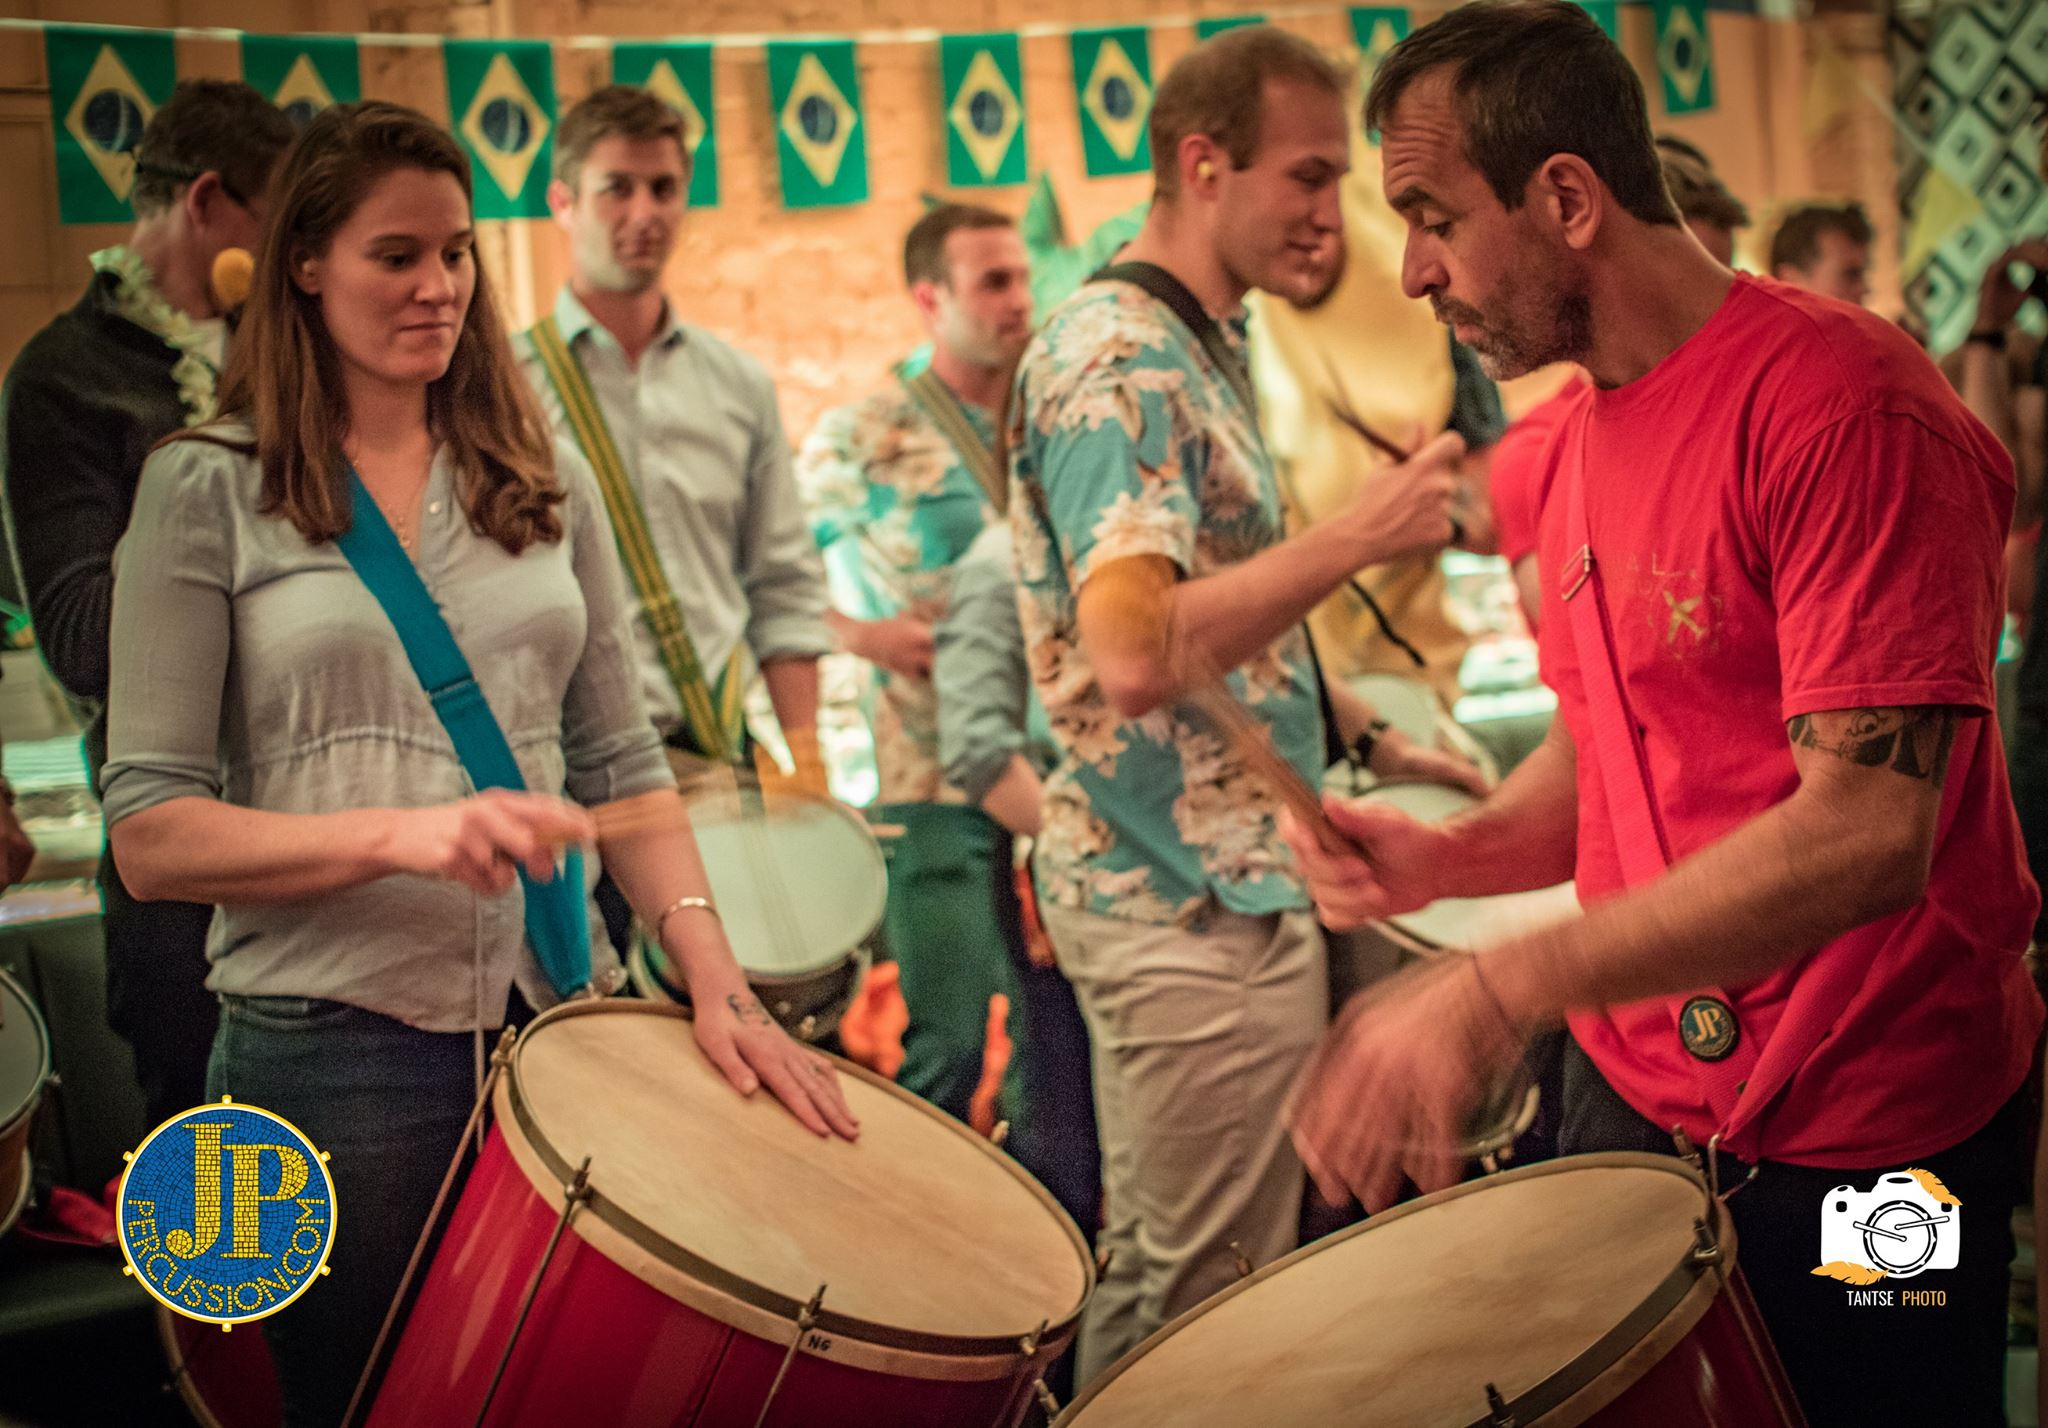 Our top team of instructors will guide your group through the easy to learn rhythms